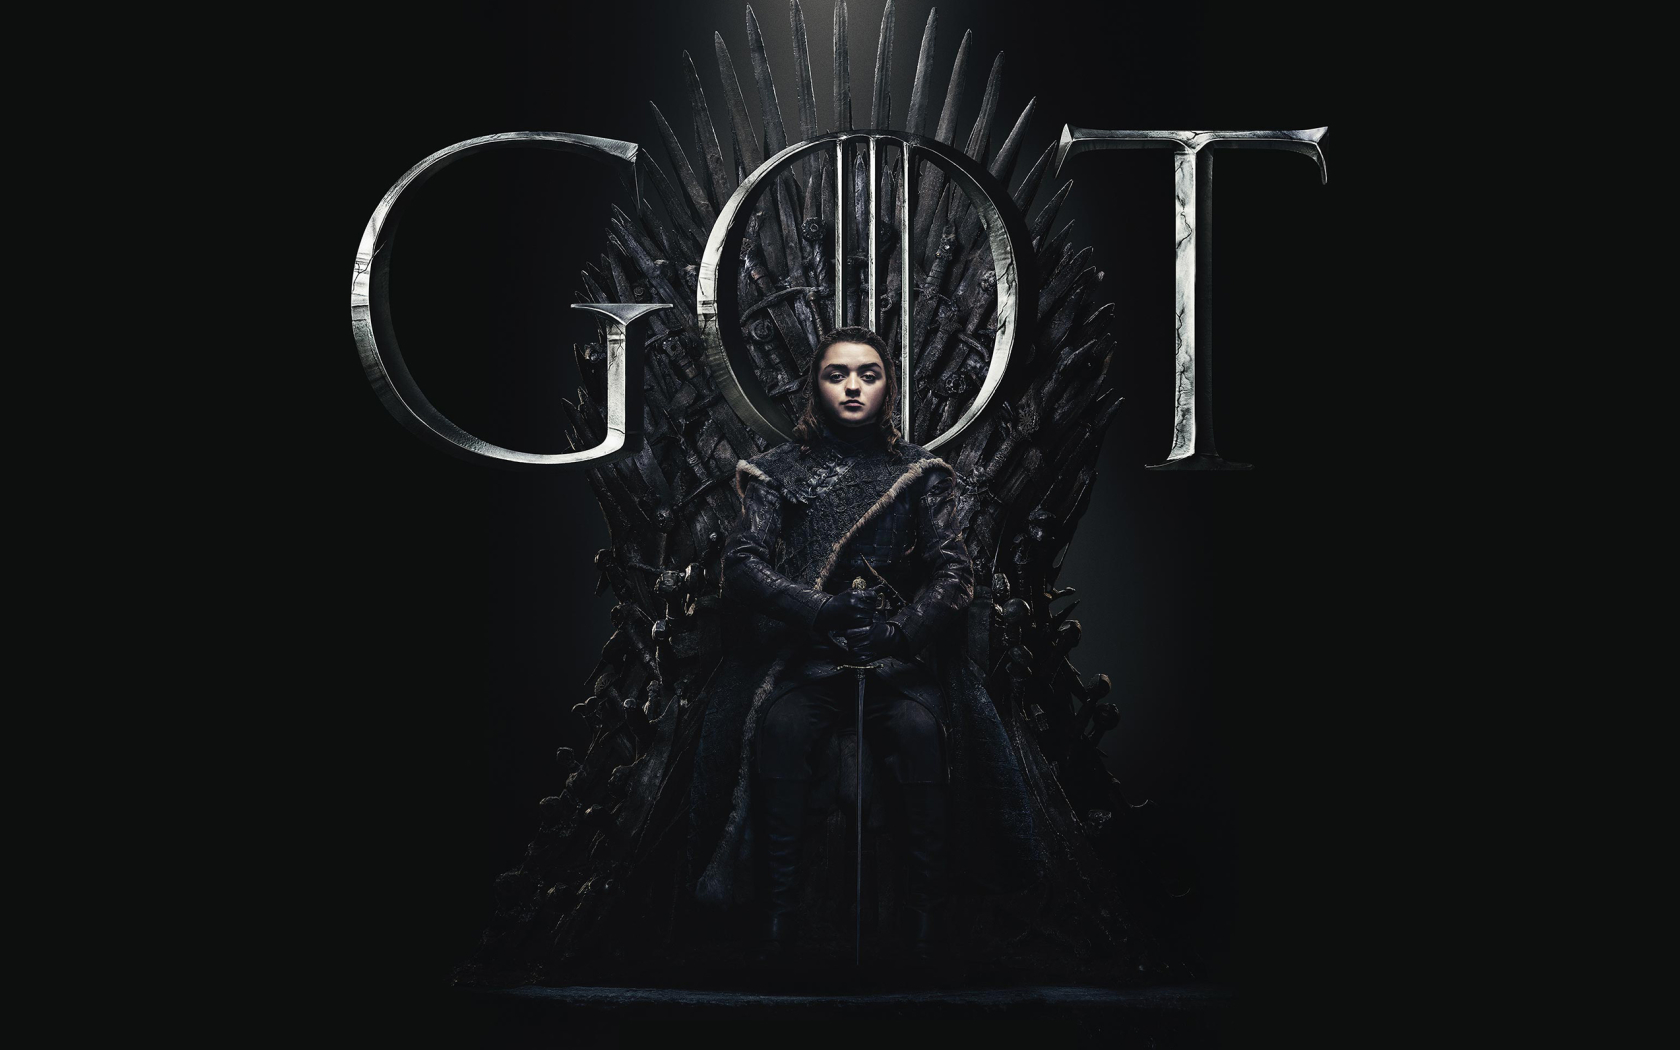 1680x1050 Arya Stark Game Of Thrones Season 8 Poster 1680x1050